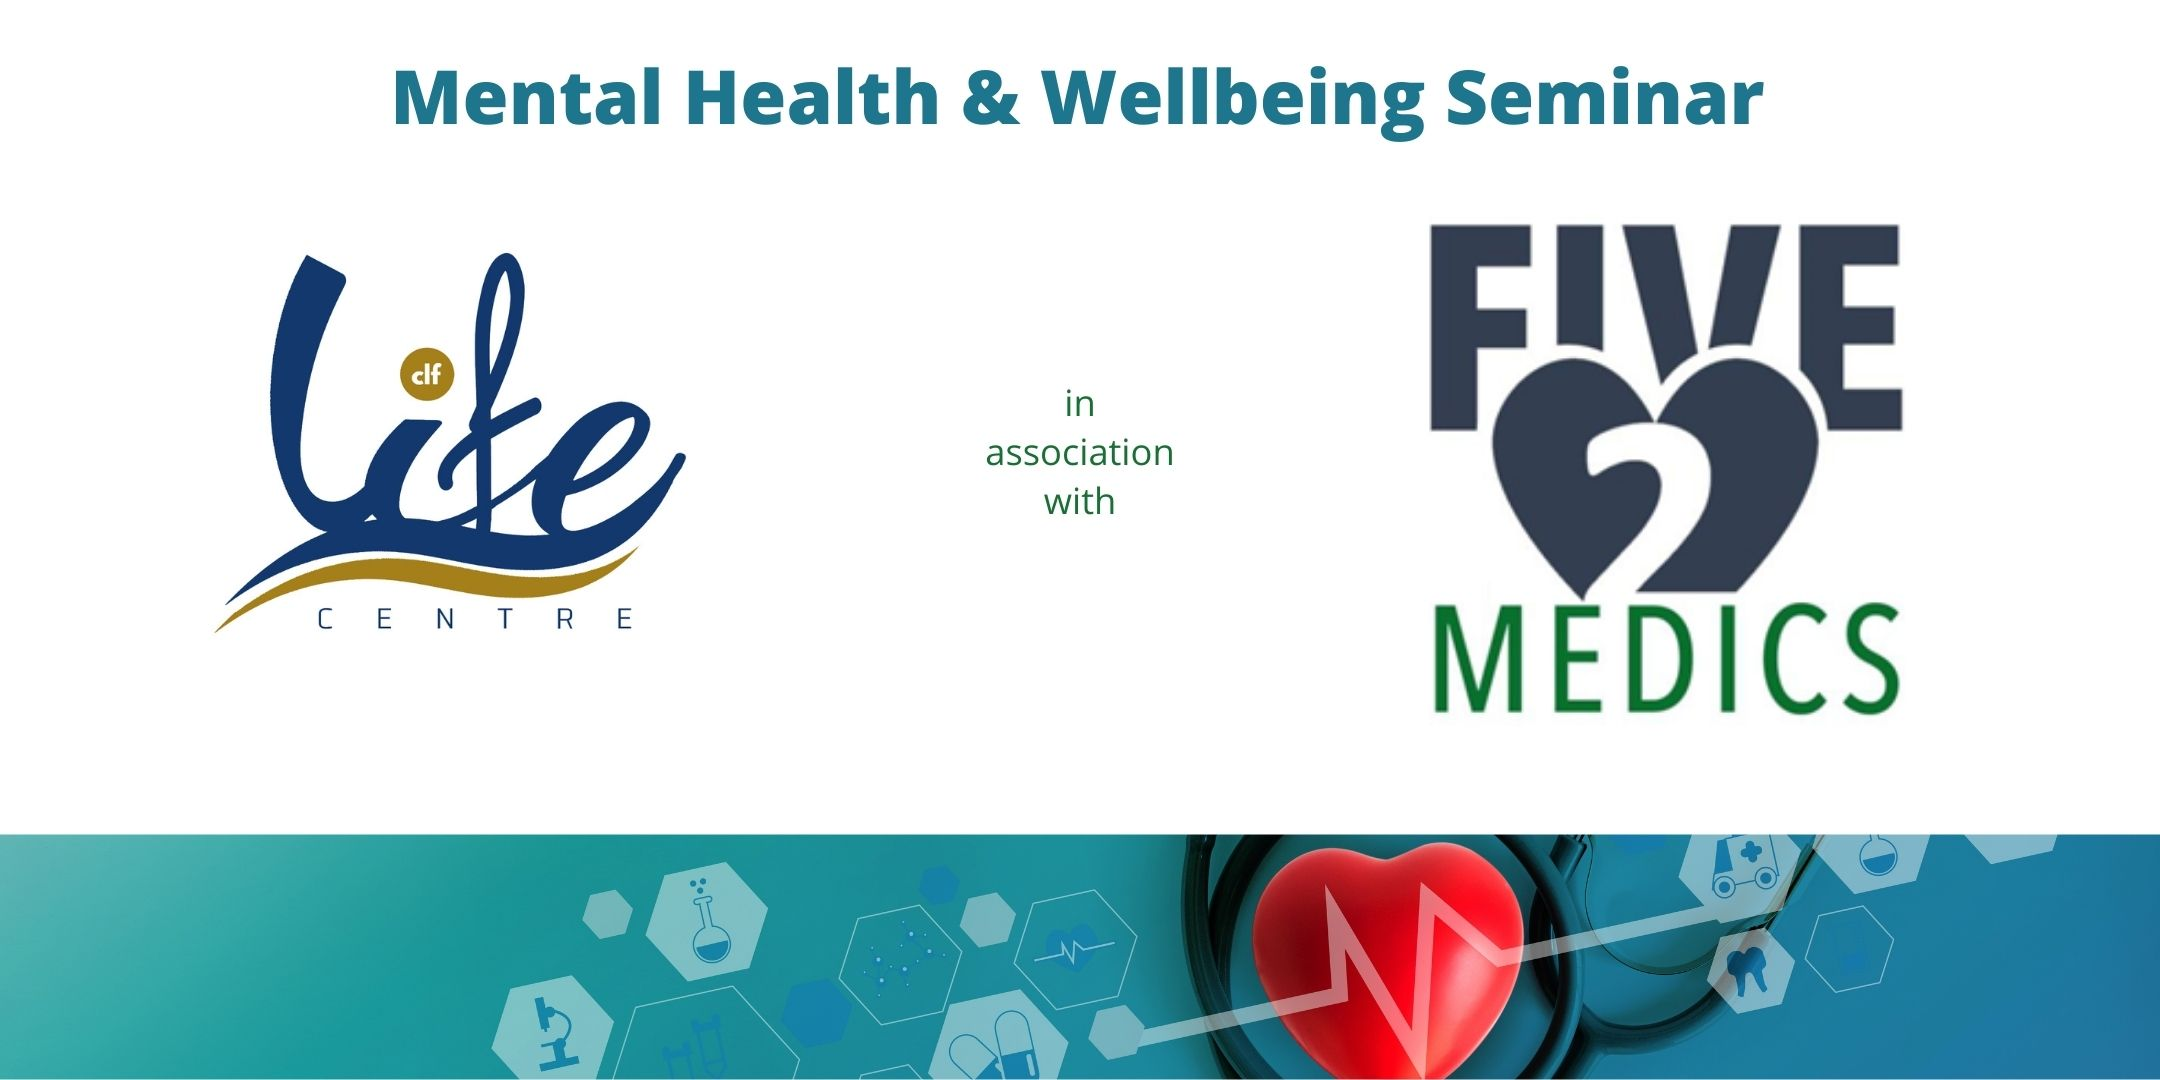 Mental Health & Wellbeing Semi